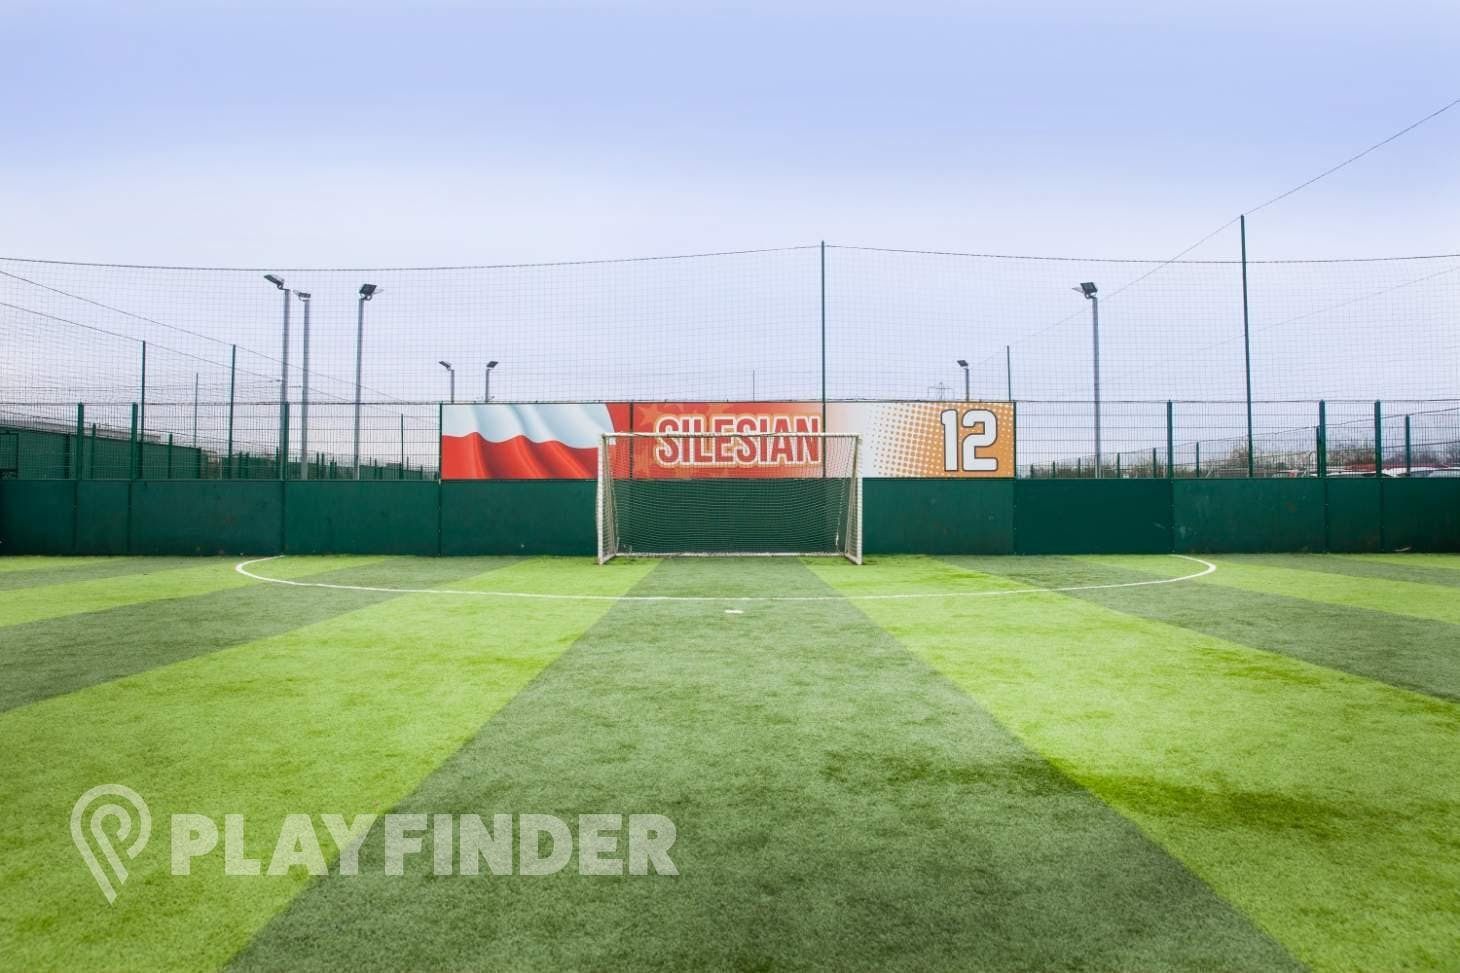 Goals Liverpool North 7 a side | 3G Astroturf football pitch